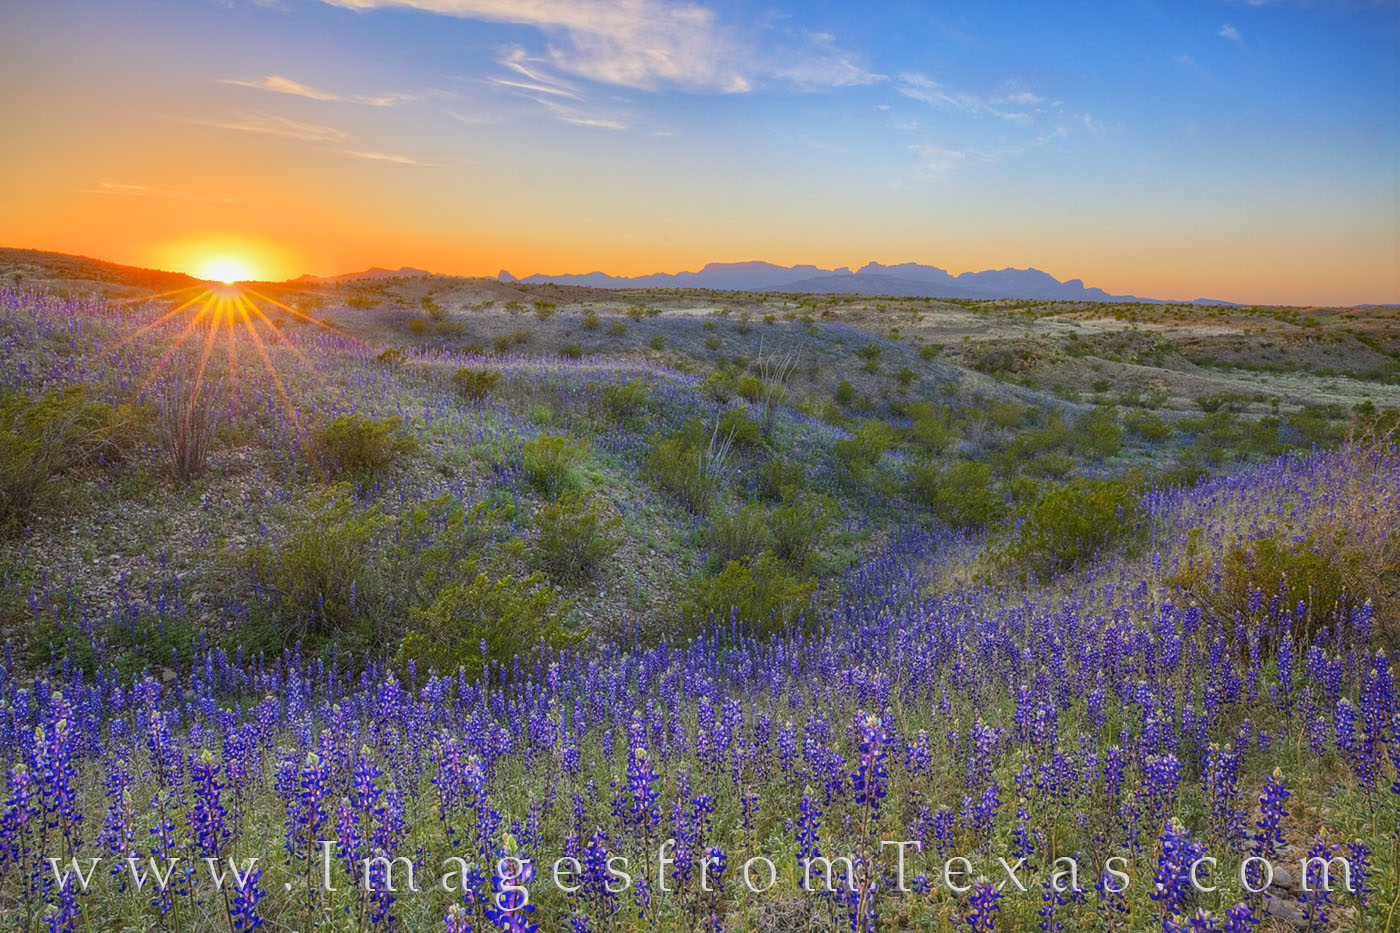 bluebonnets, east river road, big bend national park, big bend, sunset, wildflowers, chihuahuan desert, photo